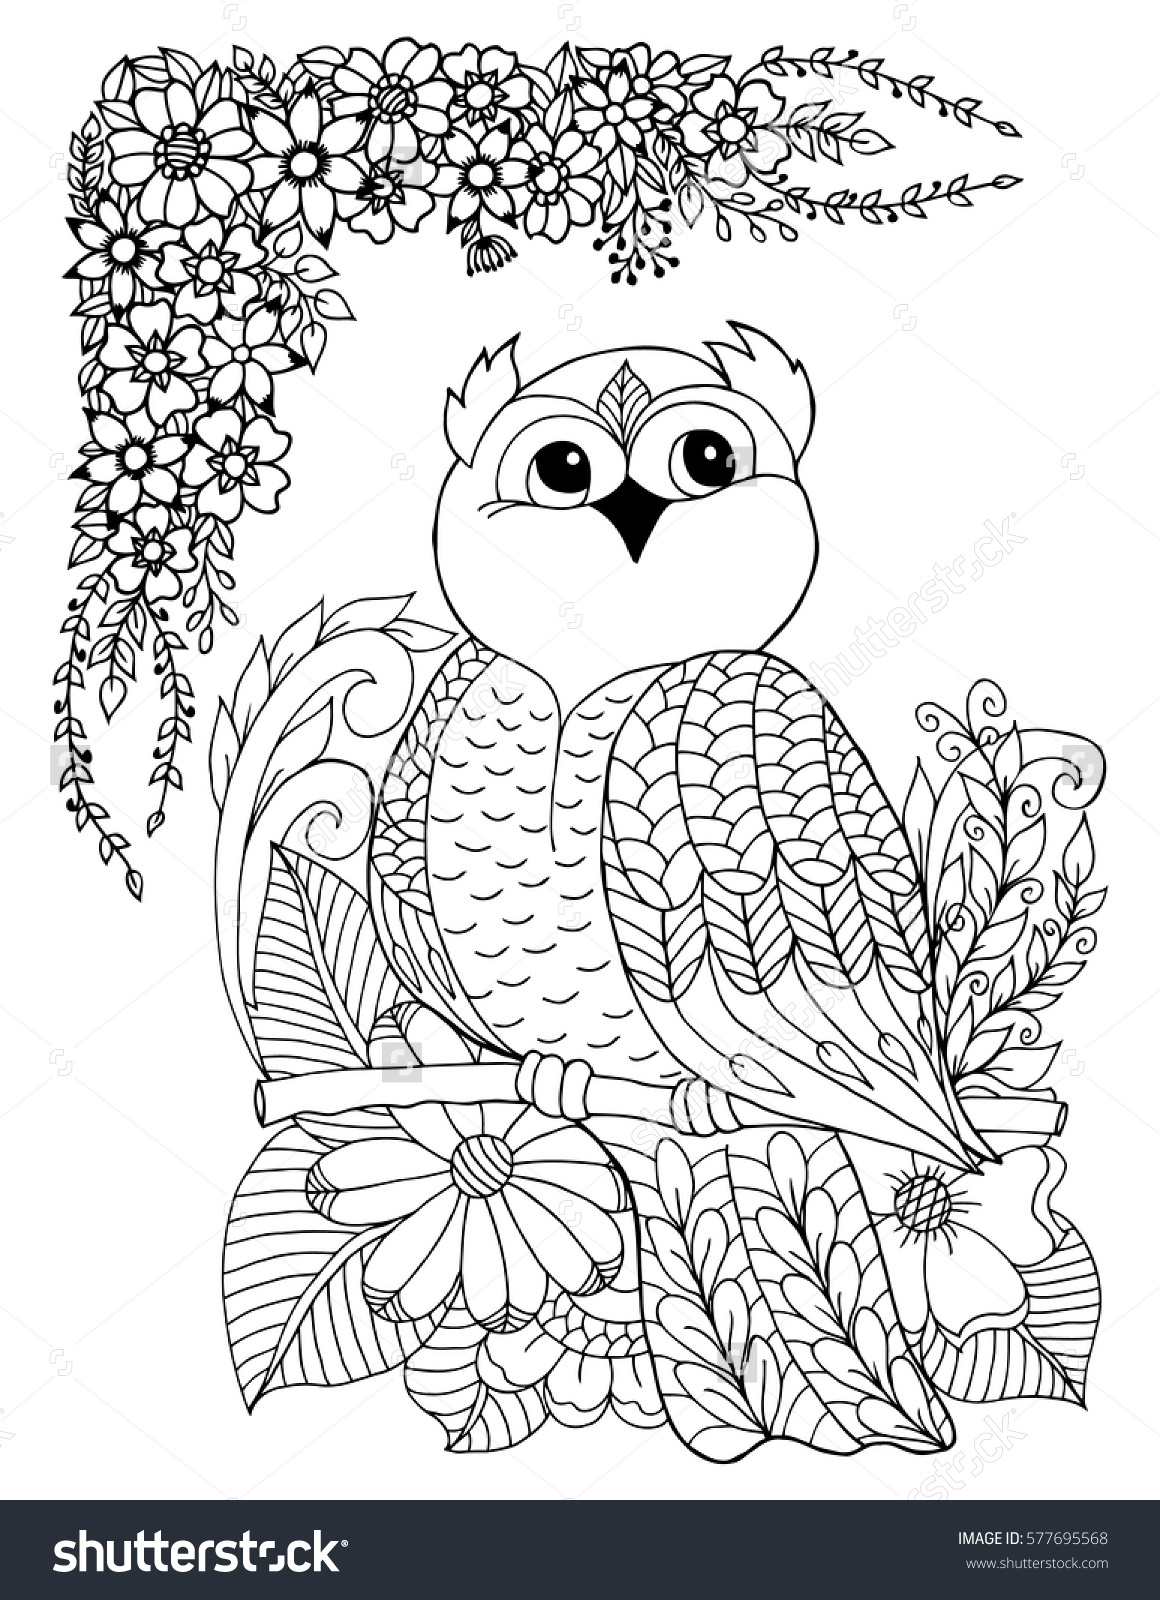 Surrounded coloring #1, Download drawings